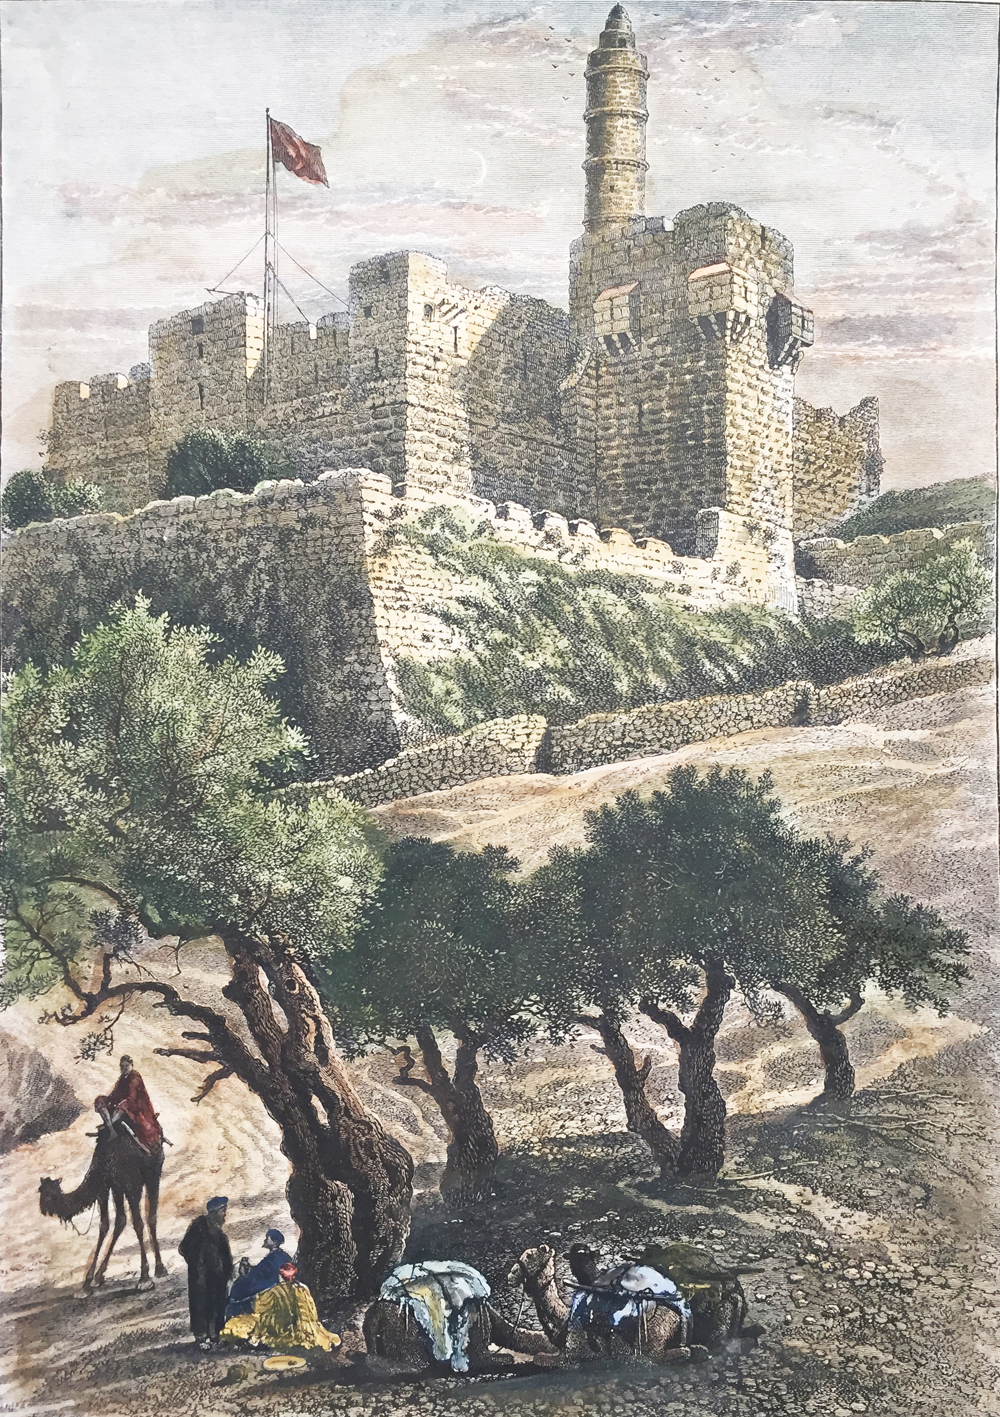 THE CITADEL OF JERUSALEM FROM THE VALLEY OF HINNOM